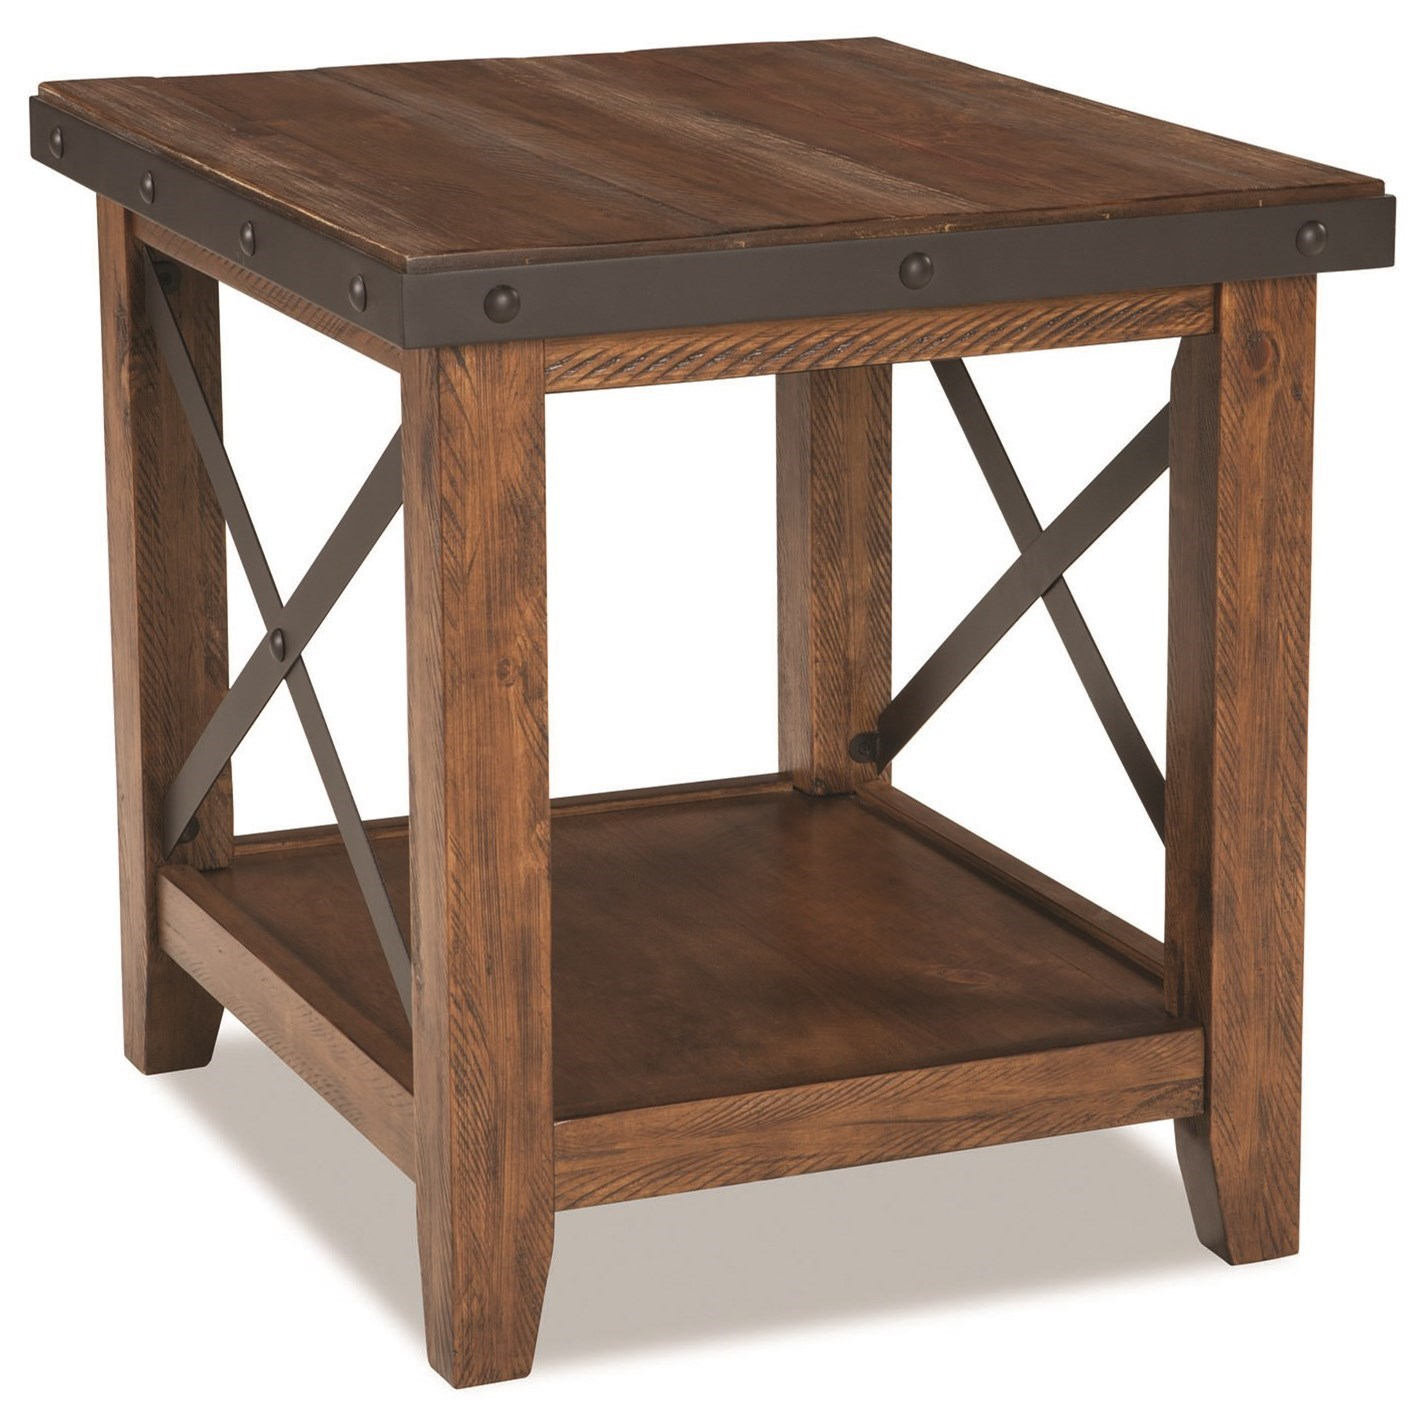 Taos End Table by Intercon at Rife's Home Furniture